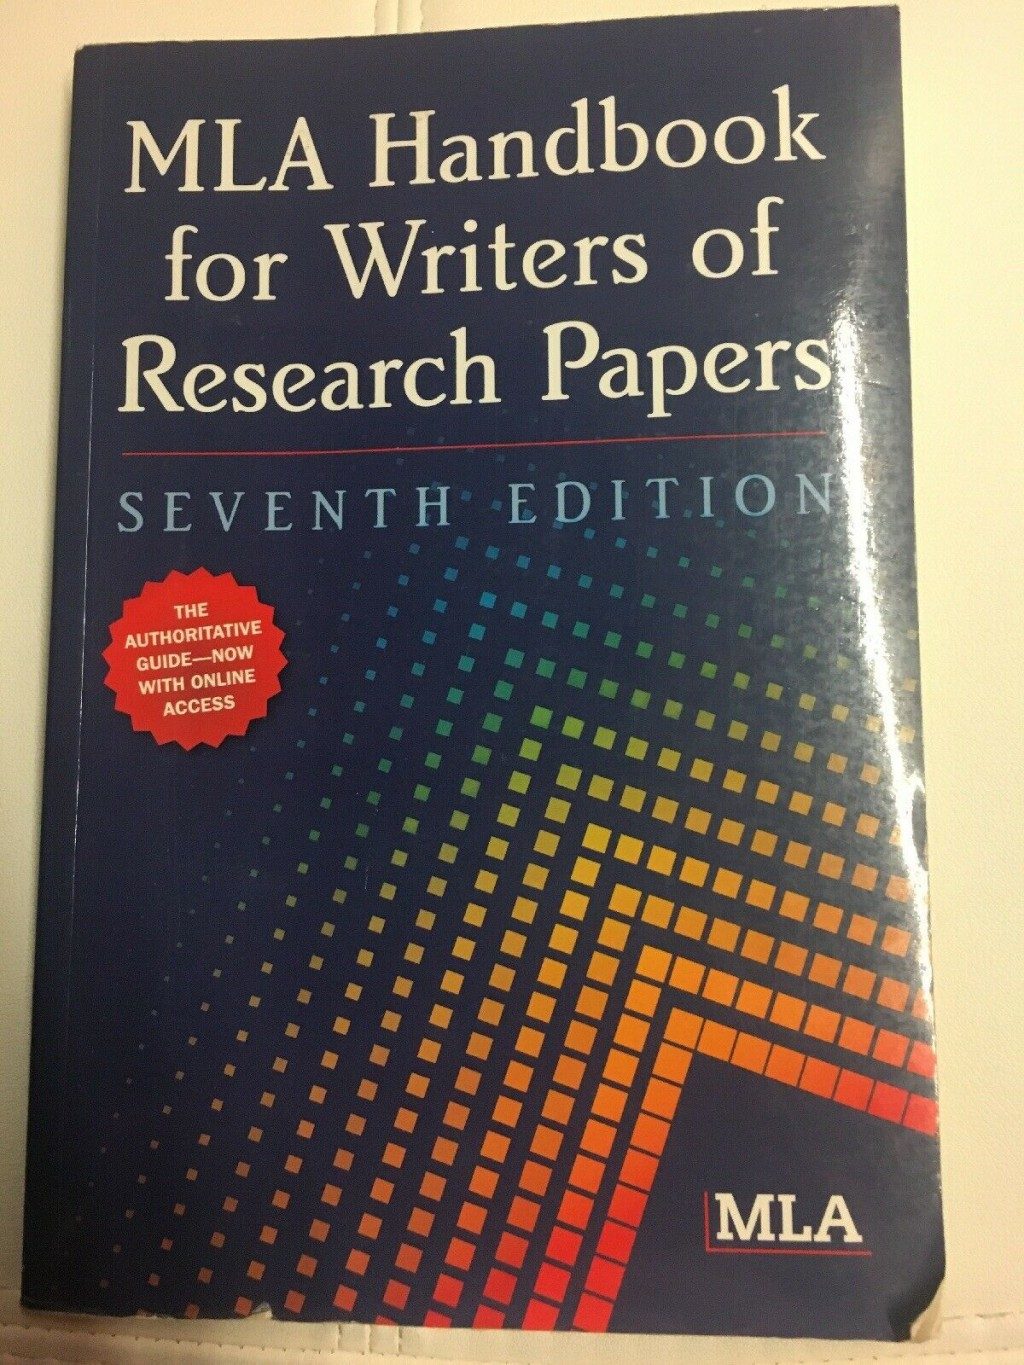 007 Mla Handbook For Writing Research Papers Paper S Frightening Writers Of 8th Edition Pdf Free Download According To The Large